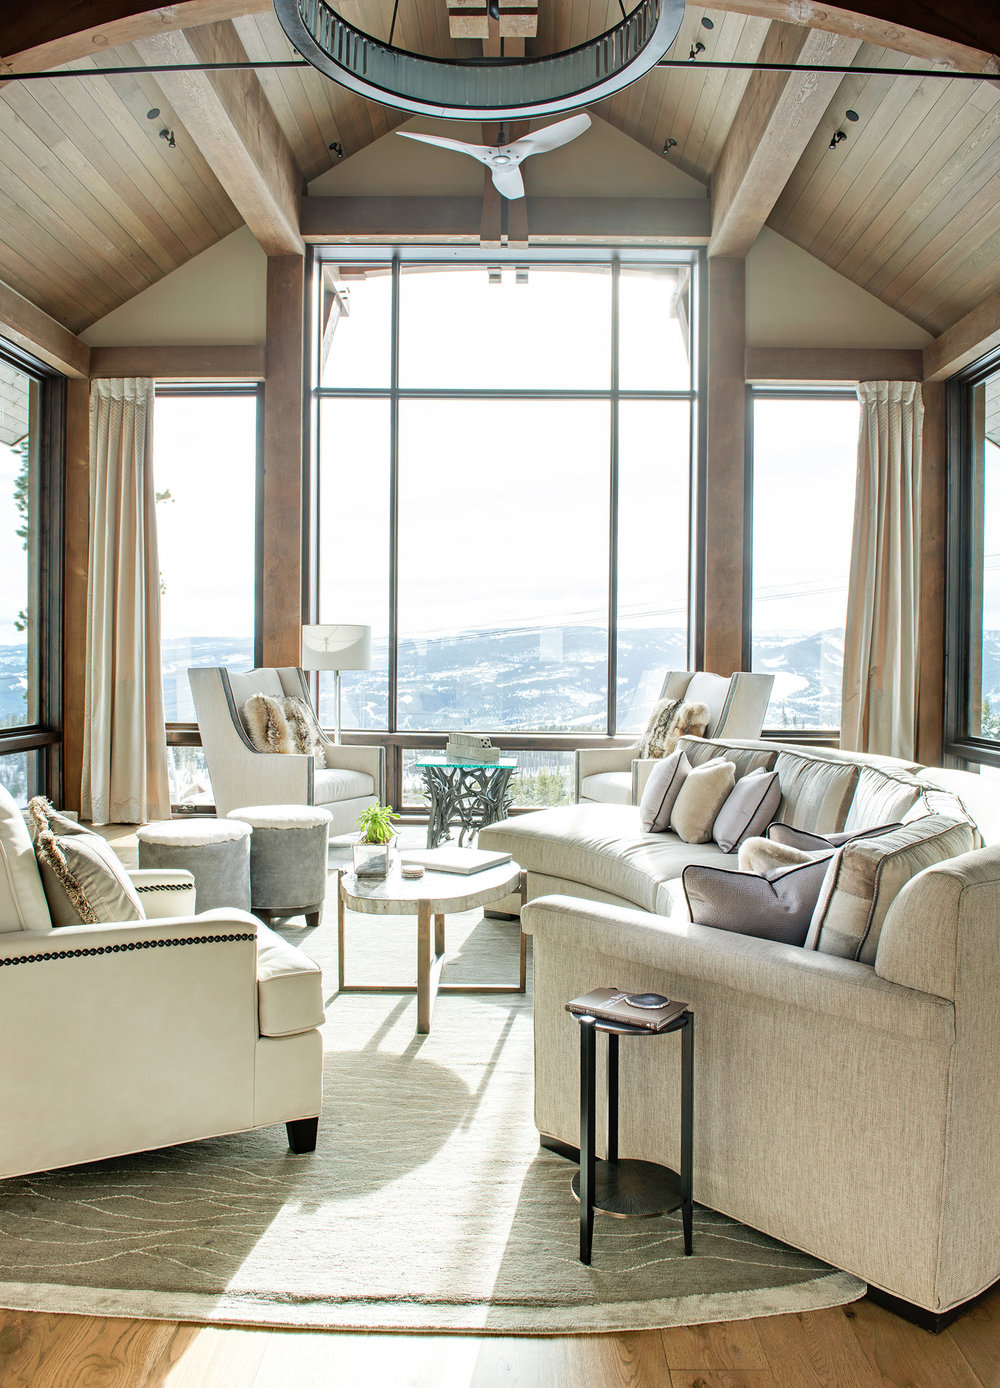 This great room is spectacular!  The large windows overlooking the surrounding mountains are complemented perfectly with the light & cozy furnishings!